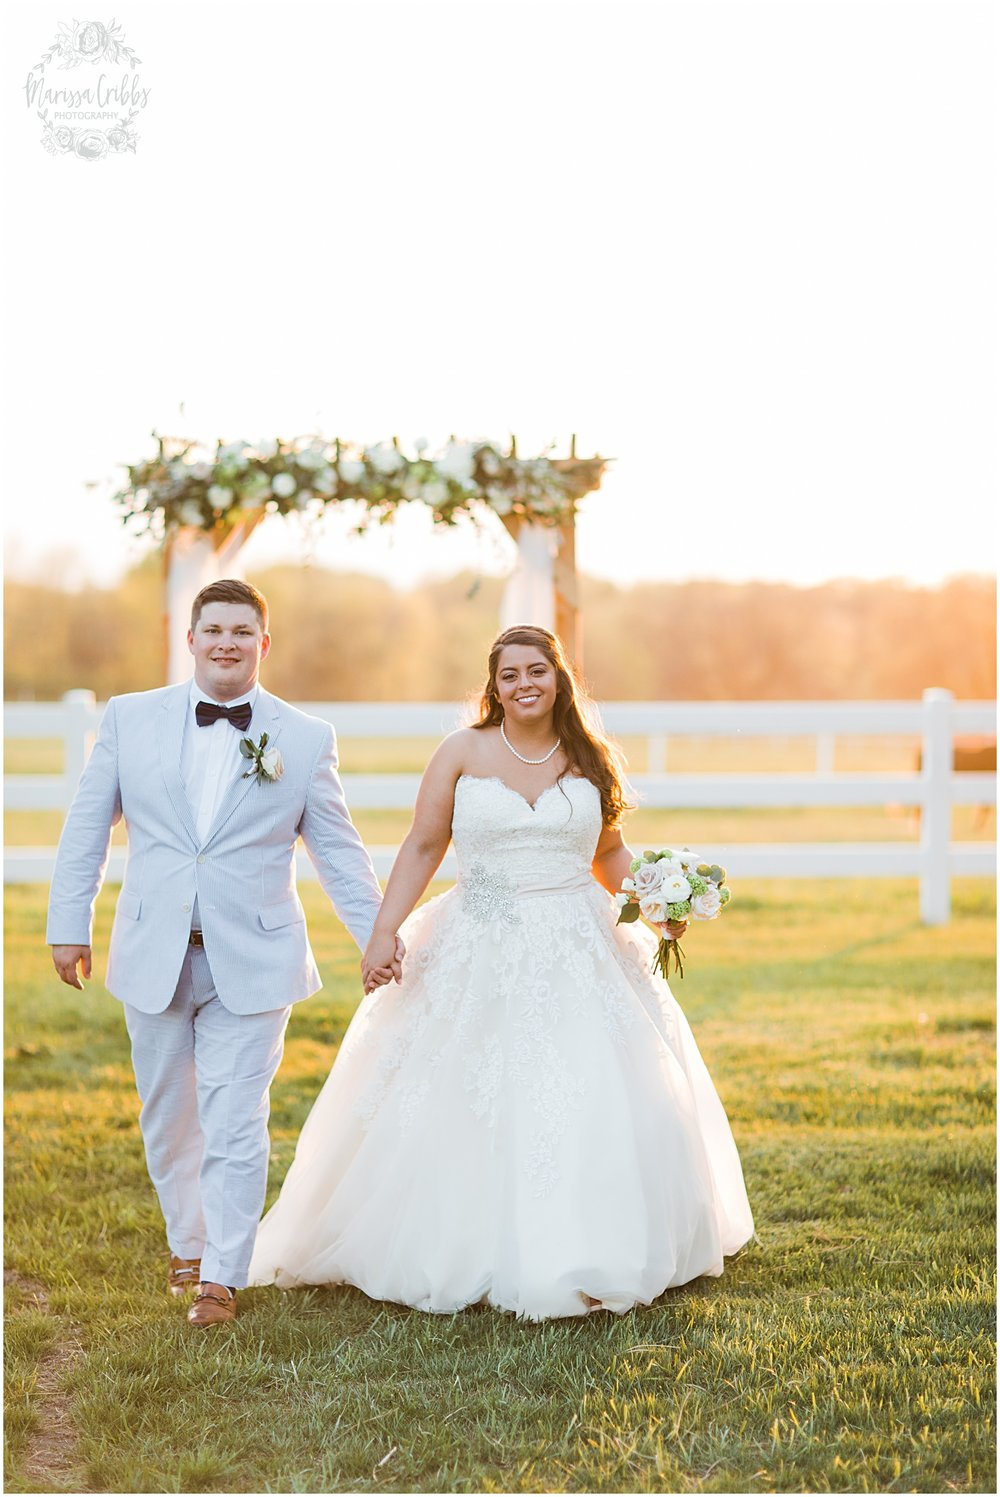 ANDREA & MICHAEL WEDDING | HICKORY CREEK RANCH | MARISSA CRIBBS PHOTOGRAPHY_4913.jpg